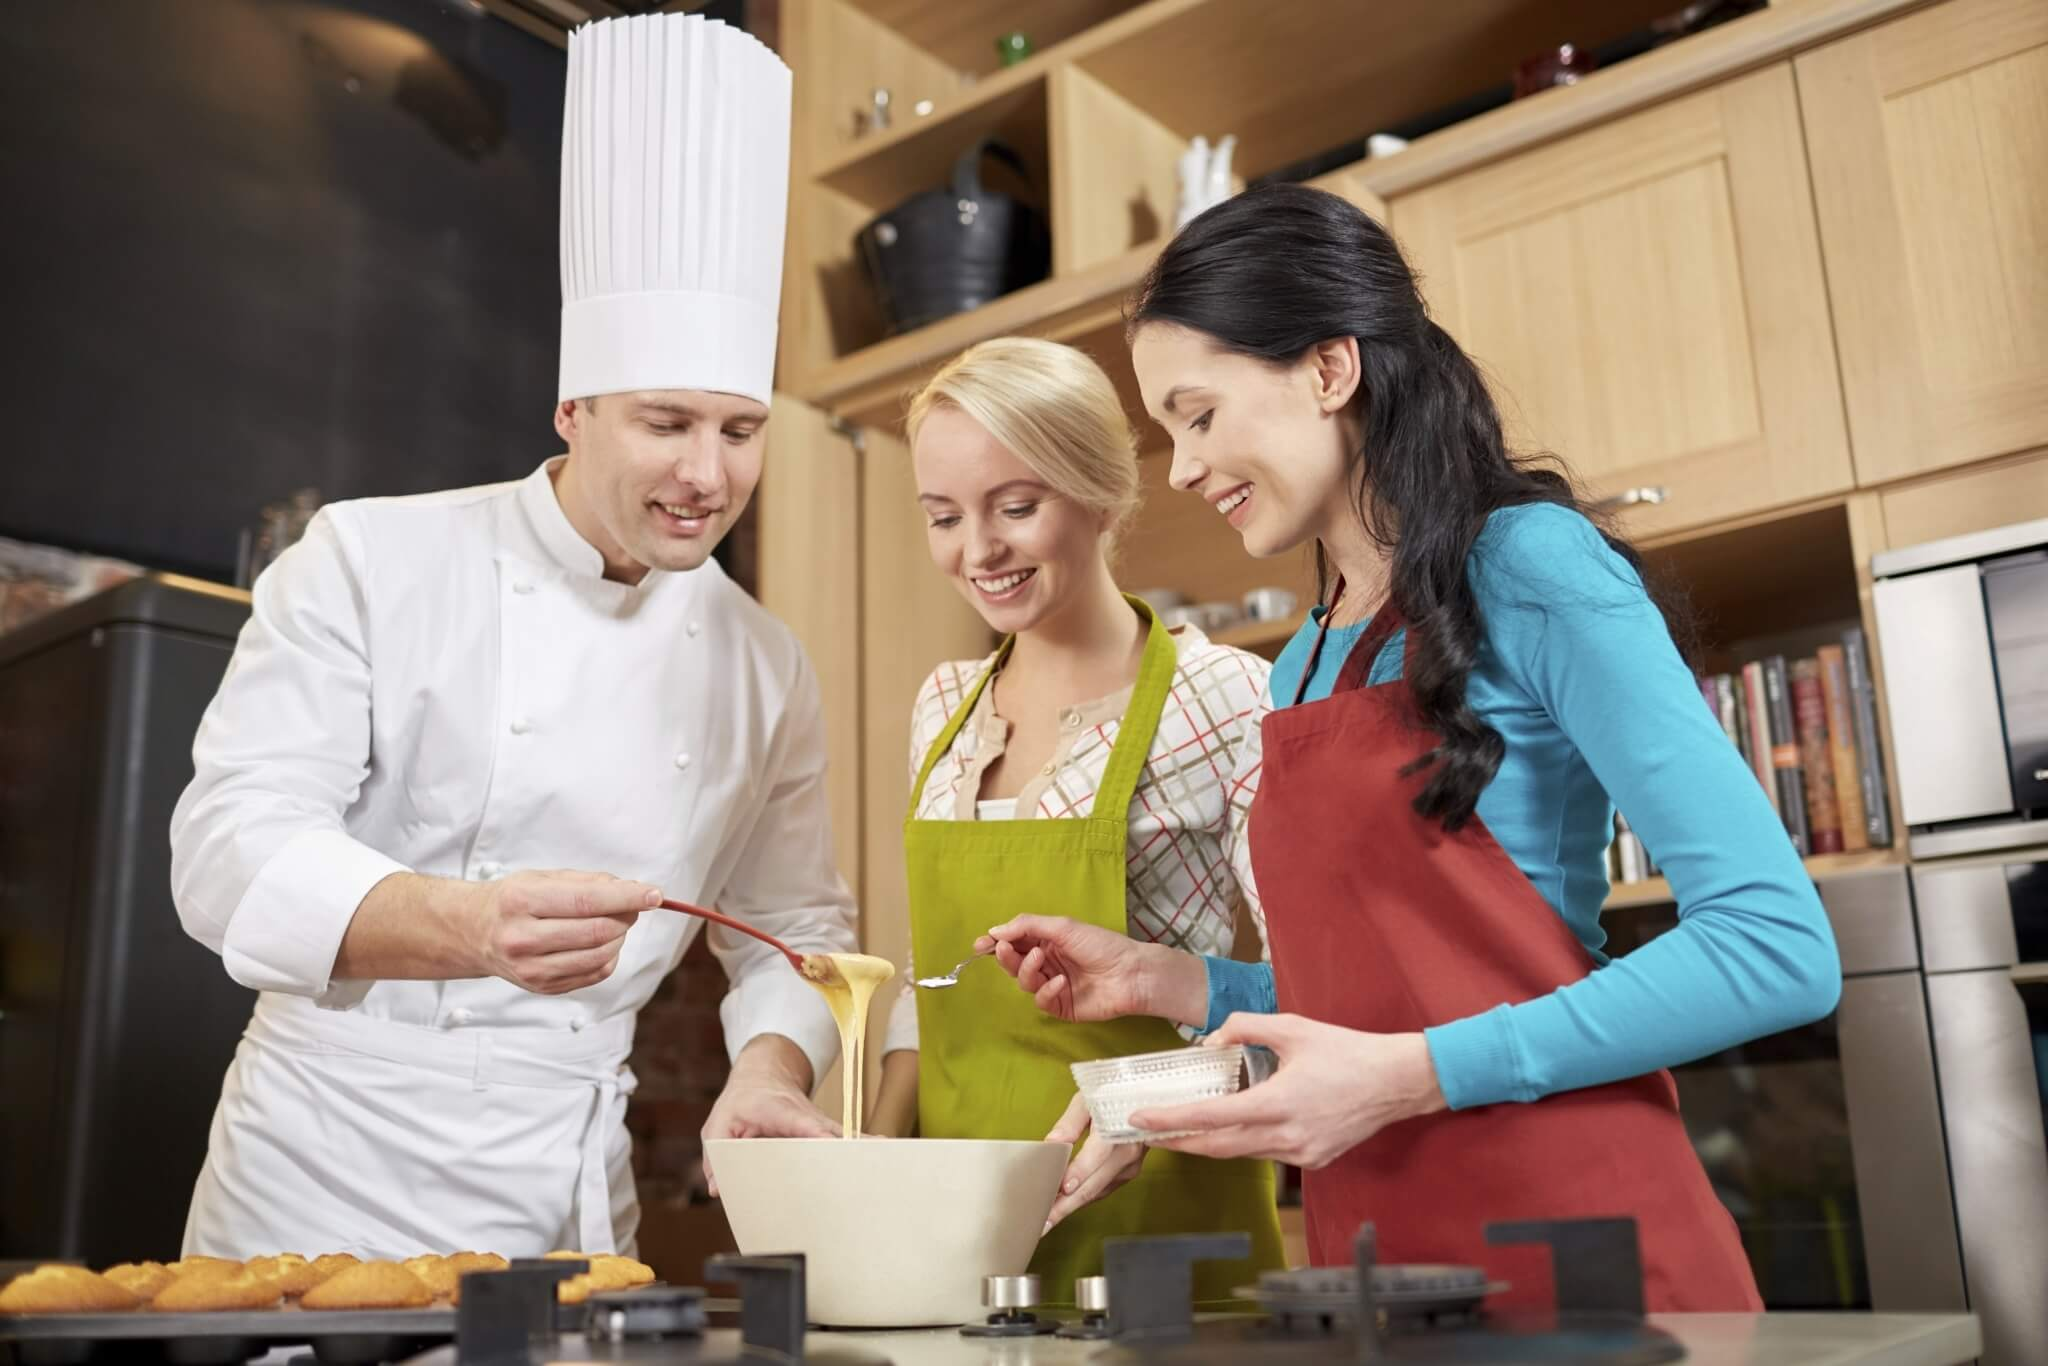 happy-women-and-chef-cook-baking-in-kitchen-000070772171_Full-1.jpg.jpeg